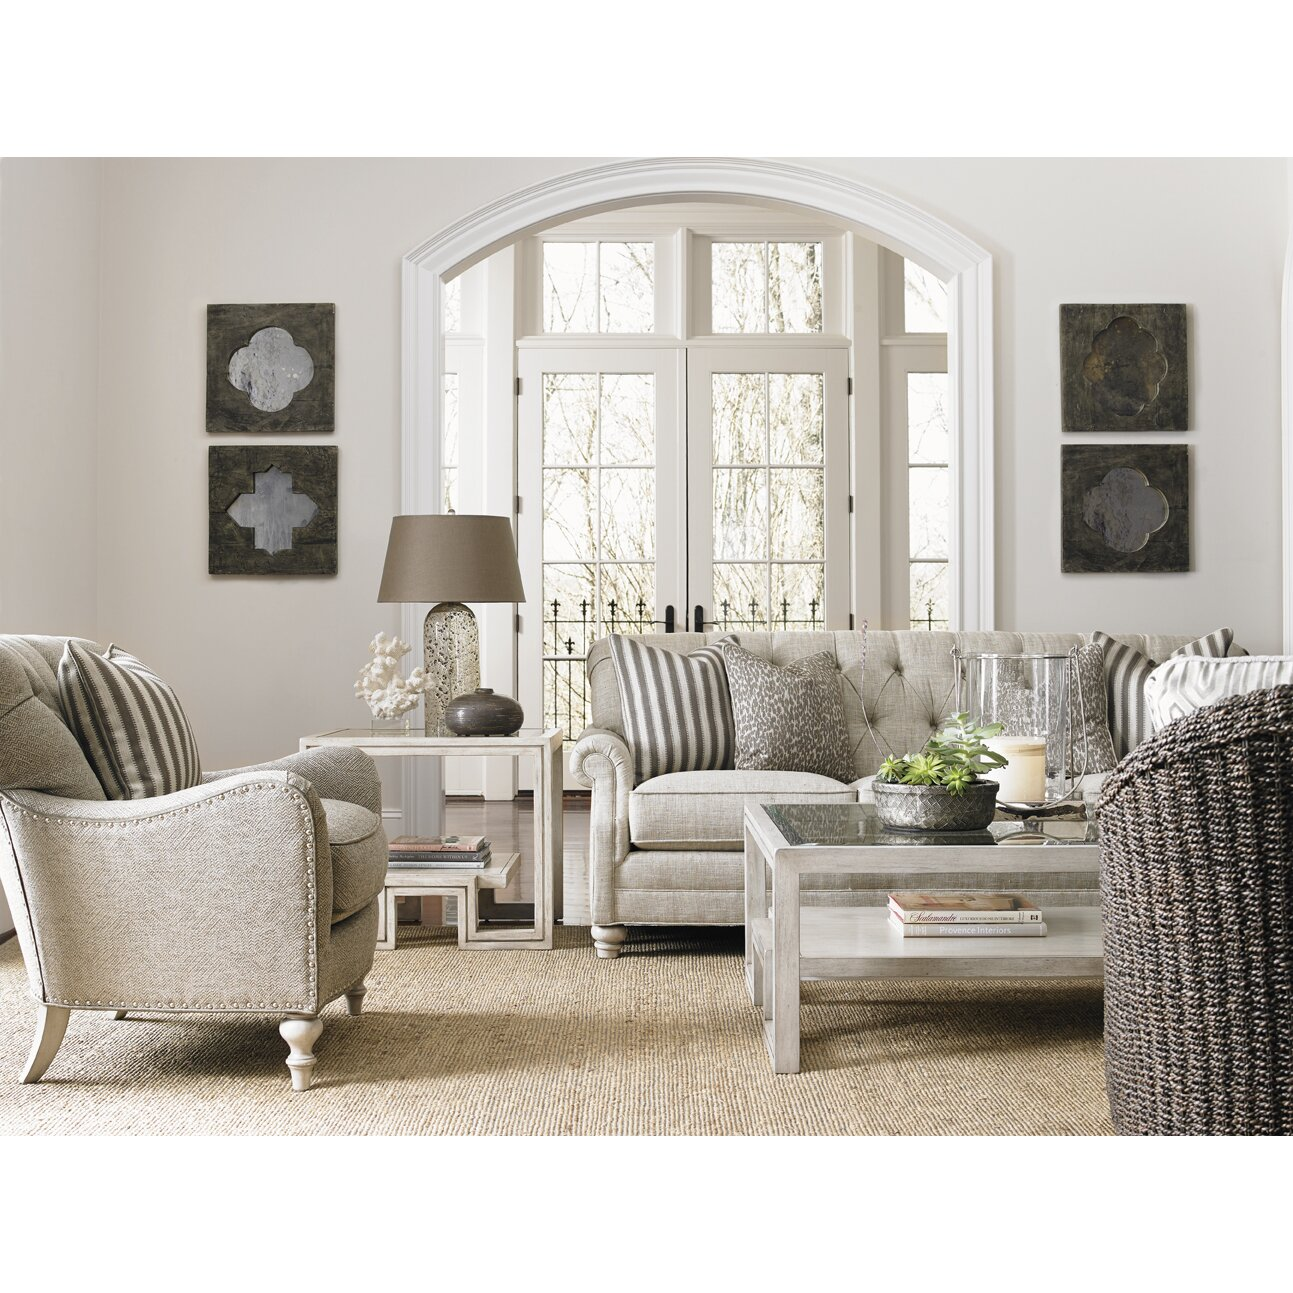 Lexington oyster bay greenport sofa wayfair Lexington country cottage bedroom furniture